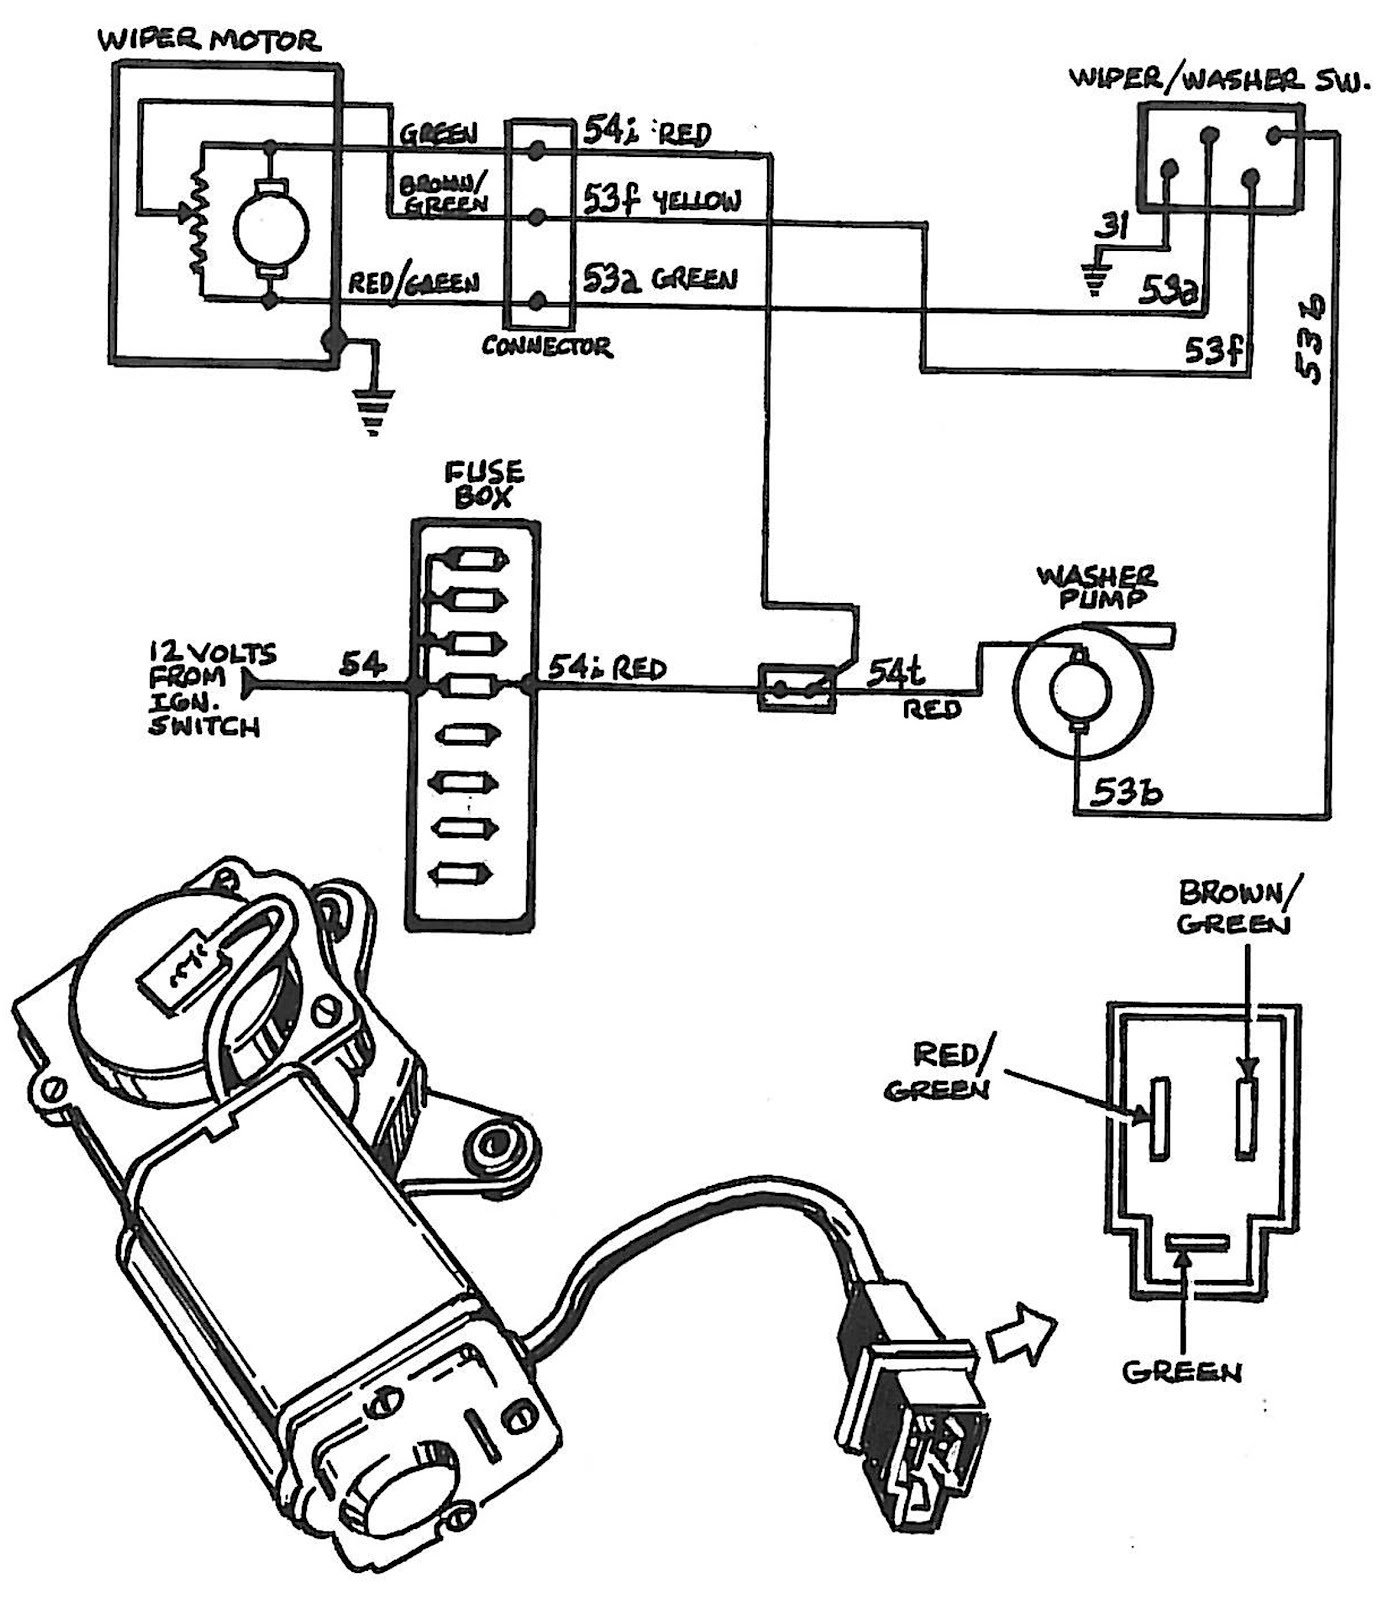 chevy windshield wiper motor wiring diagram CgTTPww trico wiper motor wiring diagram tj windshield wiper motor wires Chevrolet 350 Wiring Diagram at fashall.co